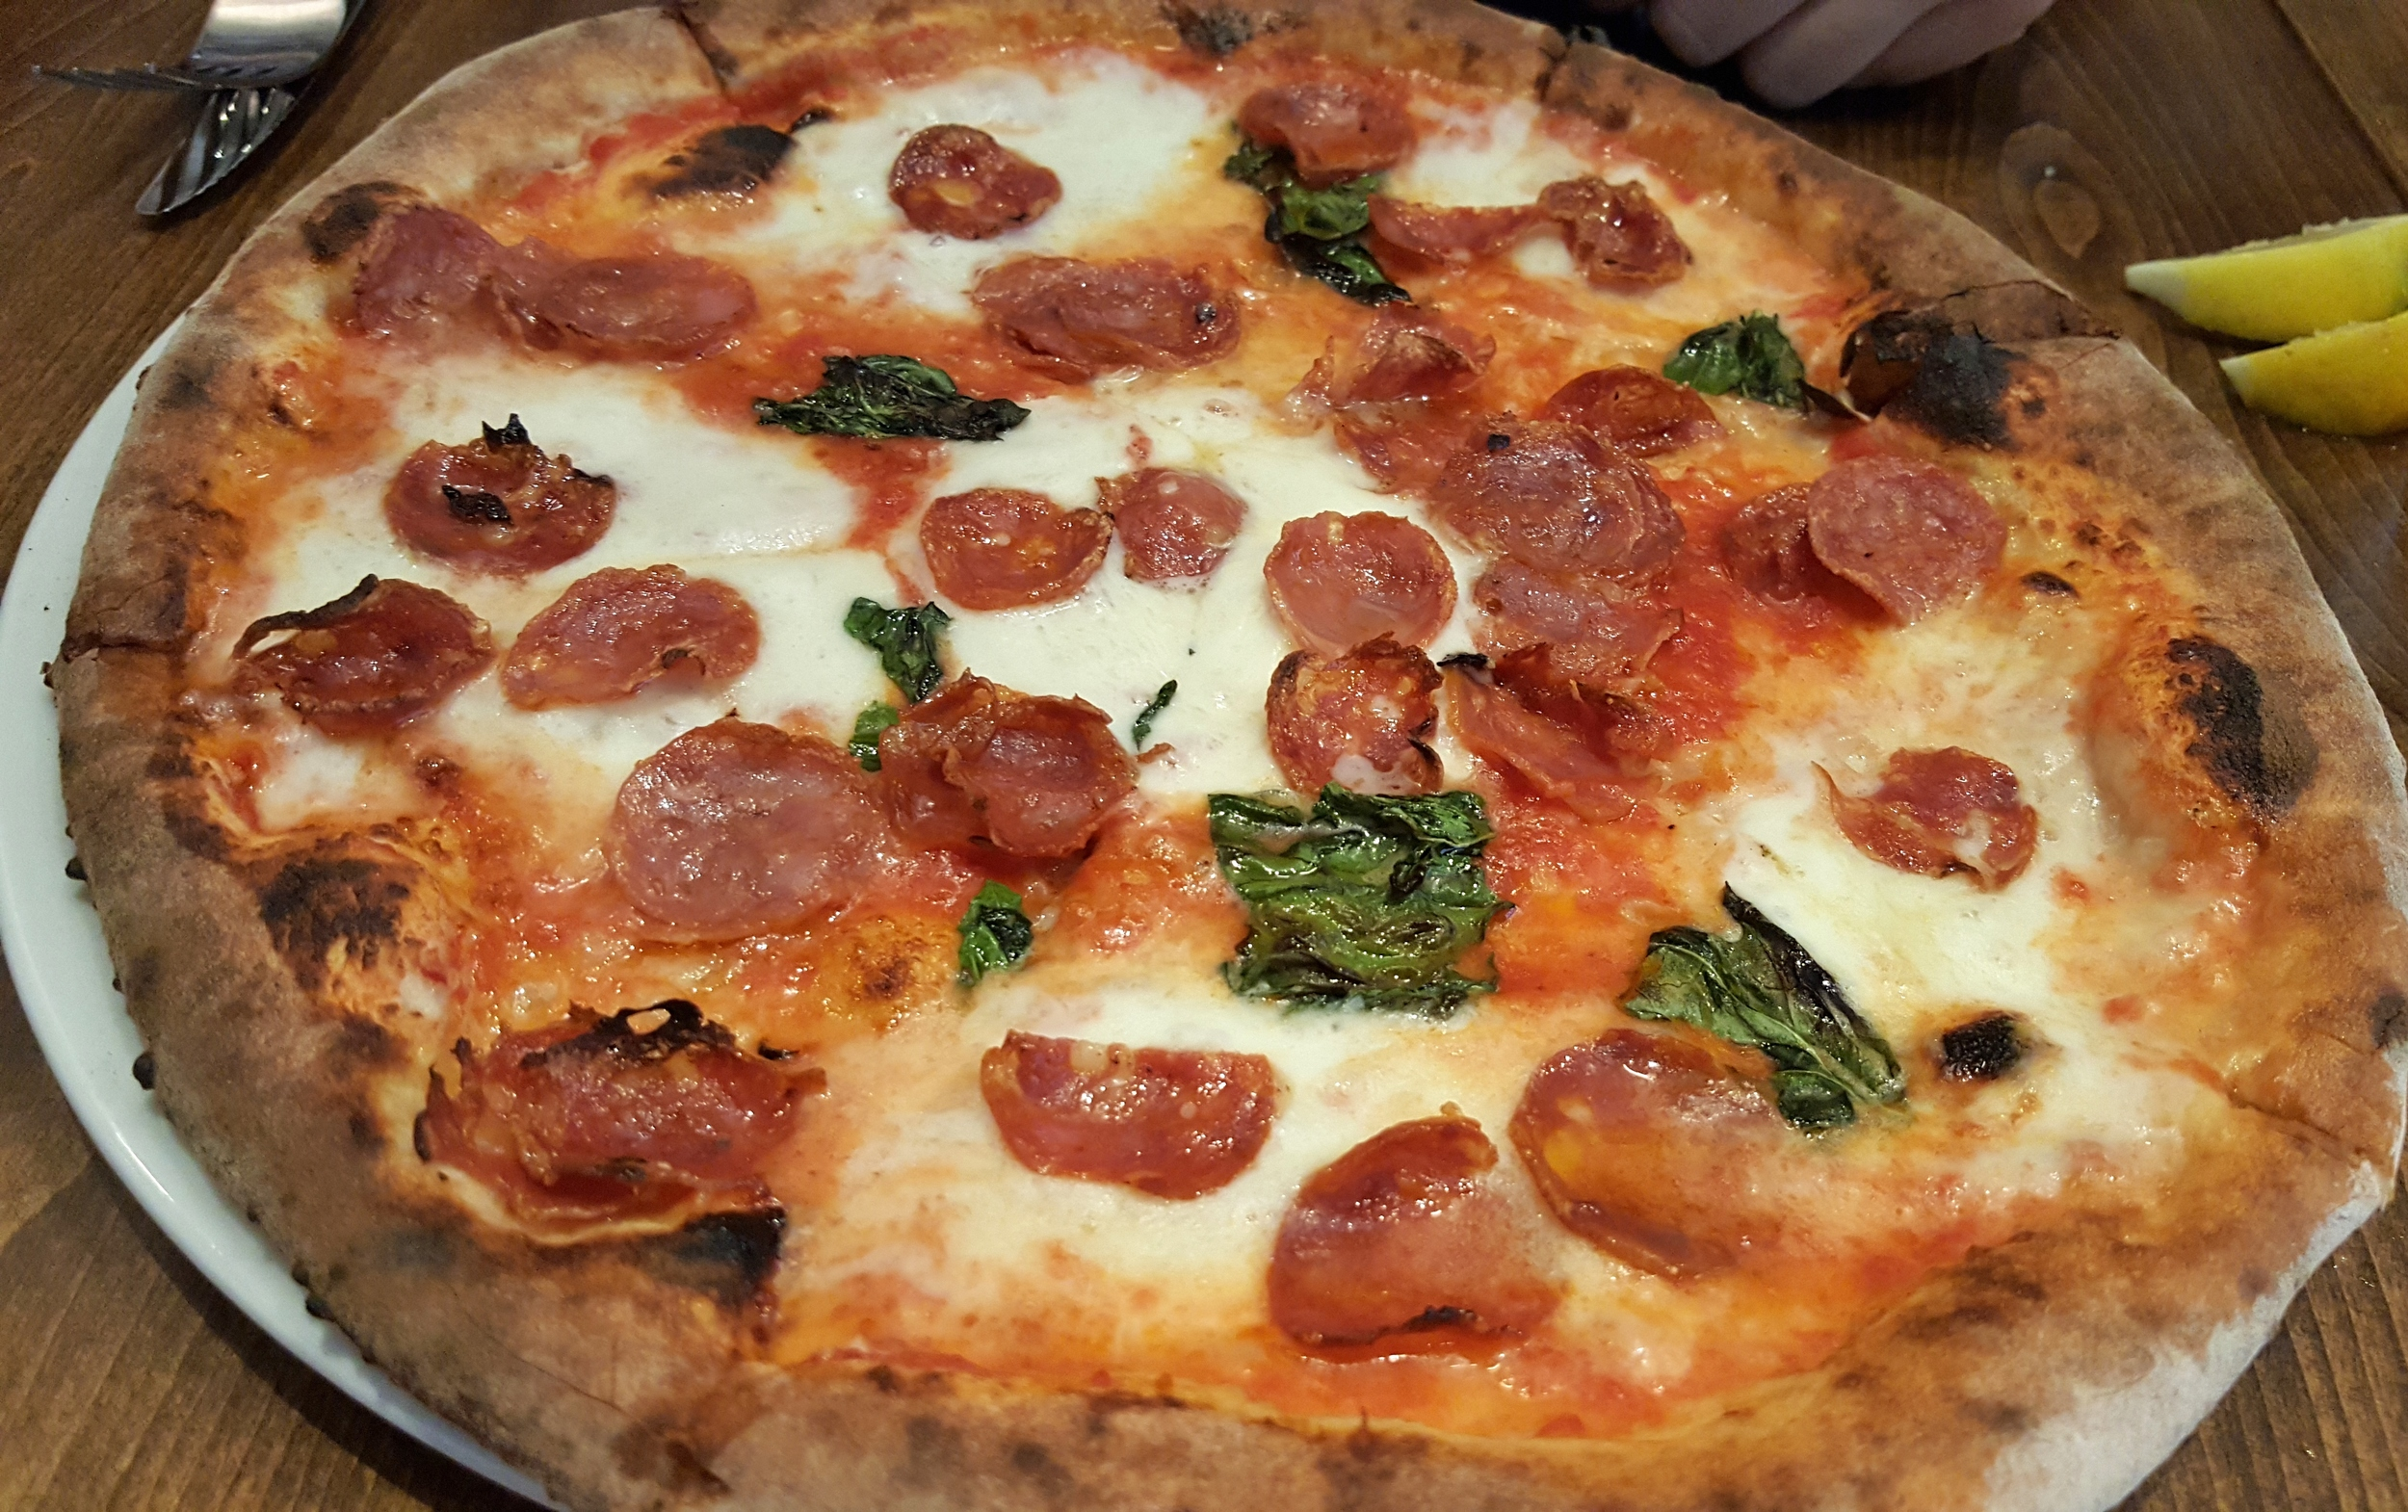 Diavola pizza with spicy salame and basil